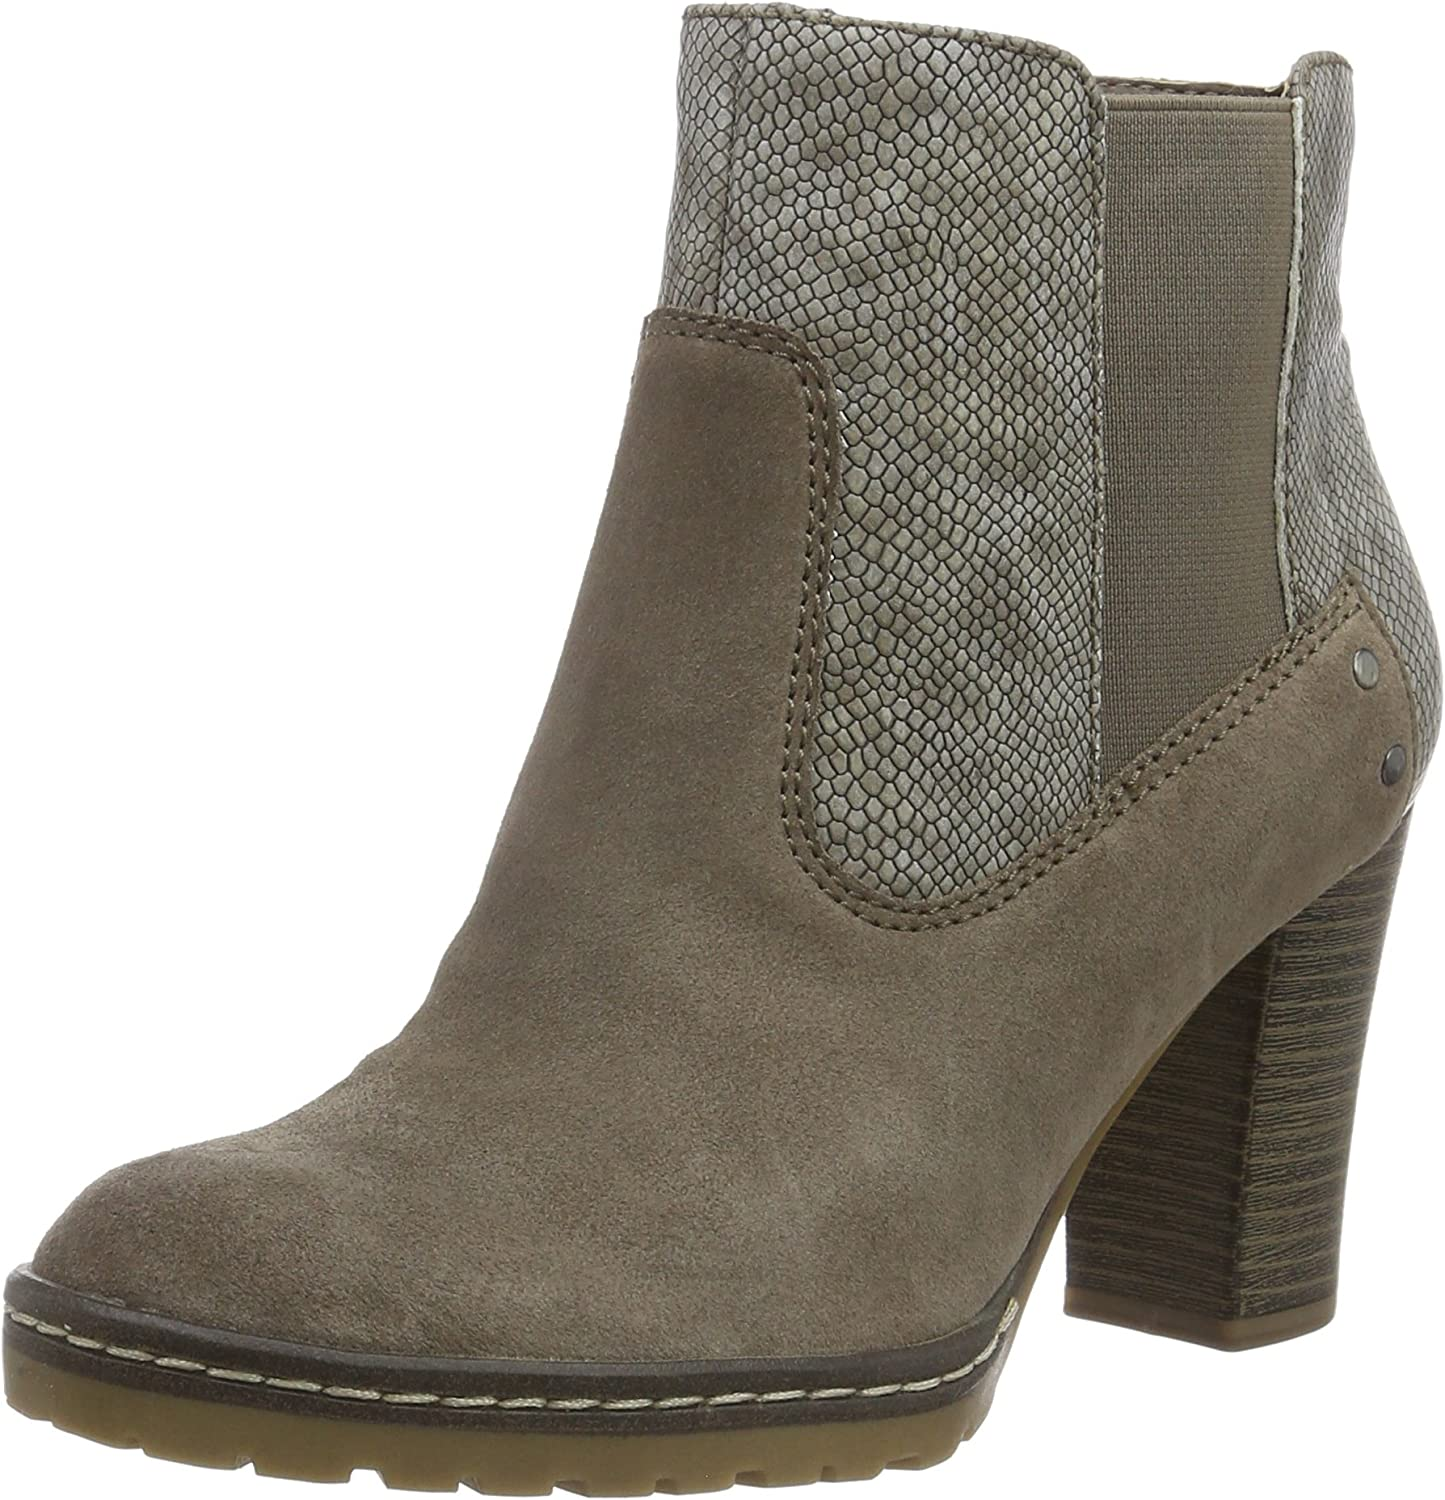 S OLIVER S Oliver Womens Boot 25431 Pepper 39